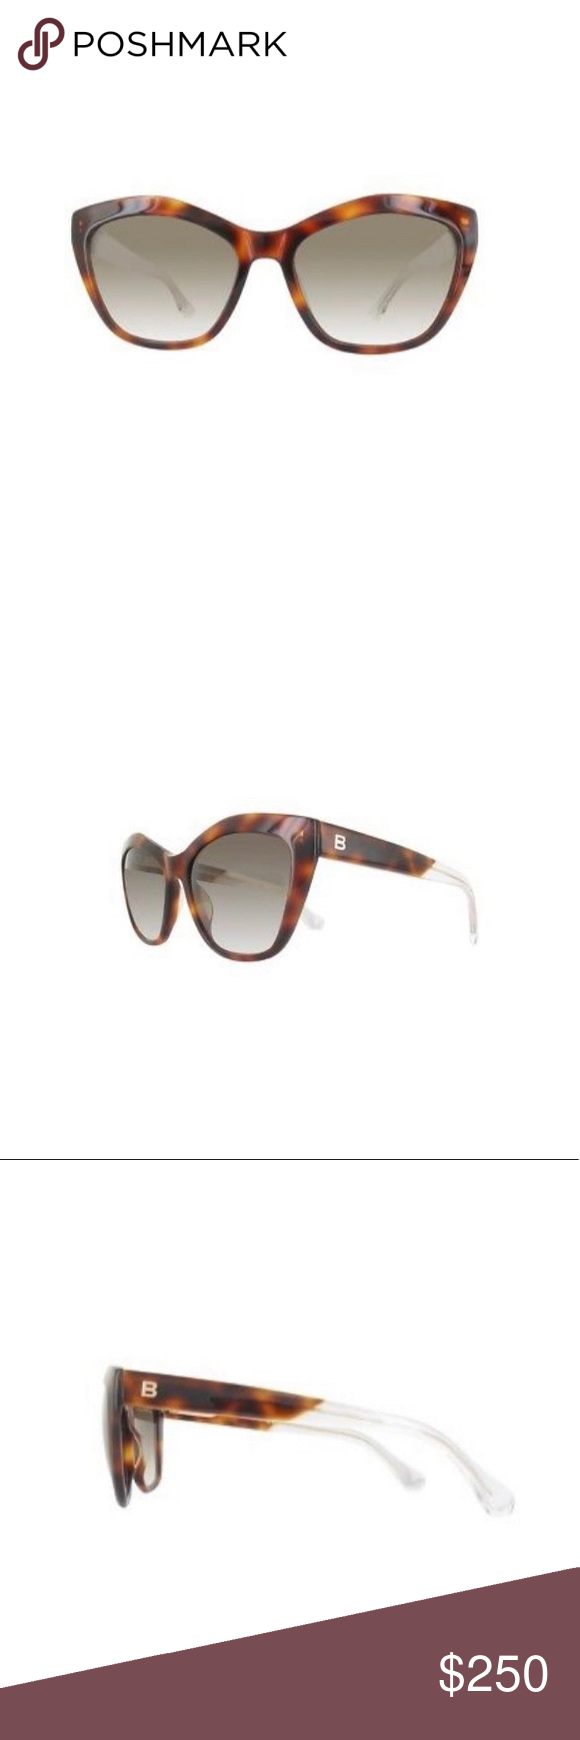 acc6d2a2ea8 BALENCIAGA SUNGLASSES The extremely popular cat-eye style gets an eye  popping makeover with